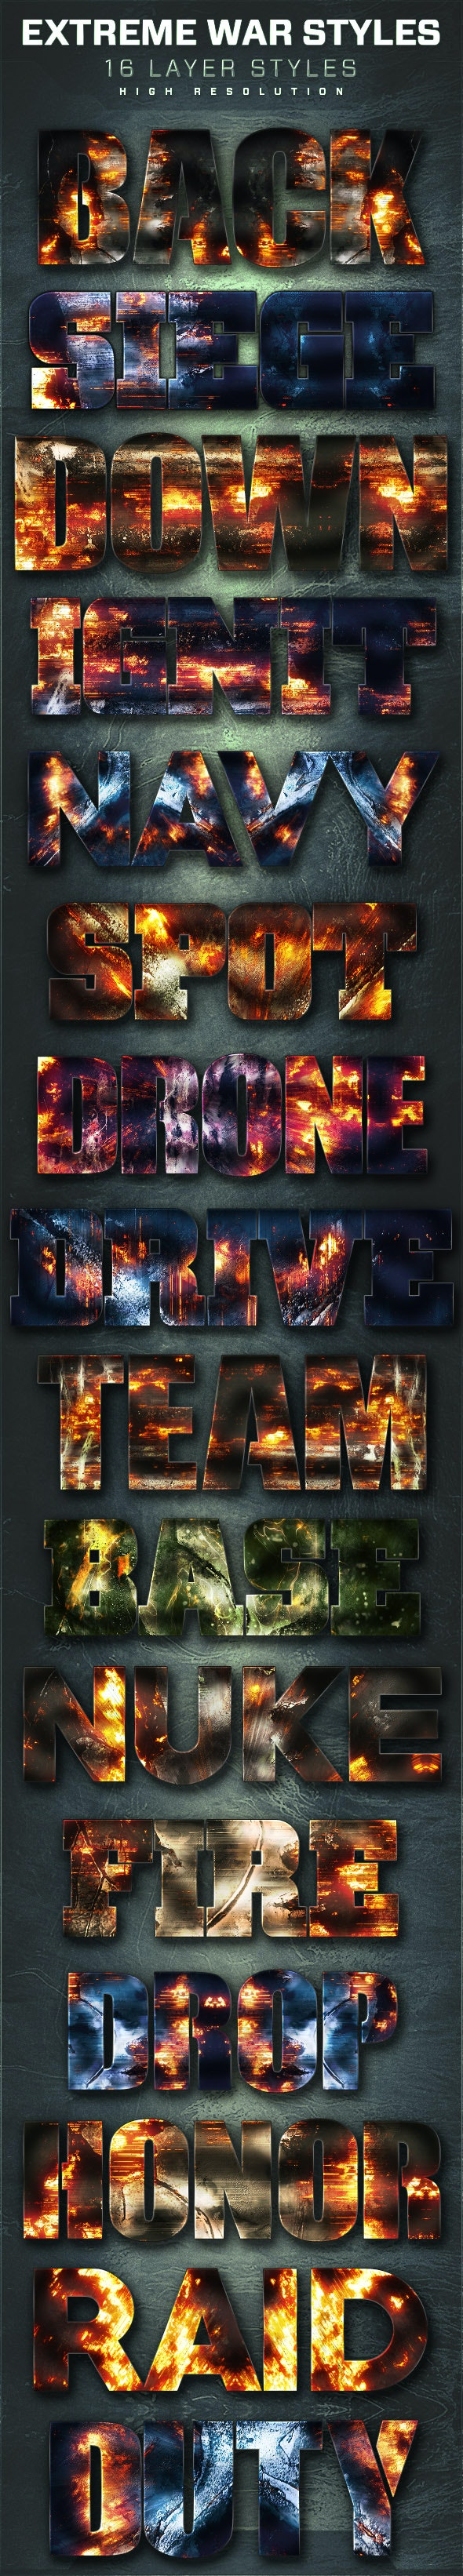 16 Extreme War Layer Styles Volume 3 - Text Effects Styles